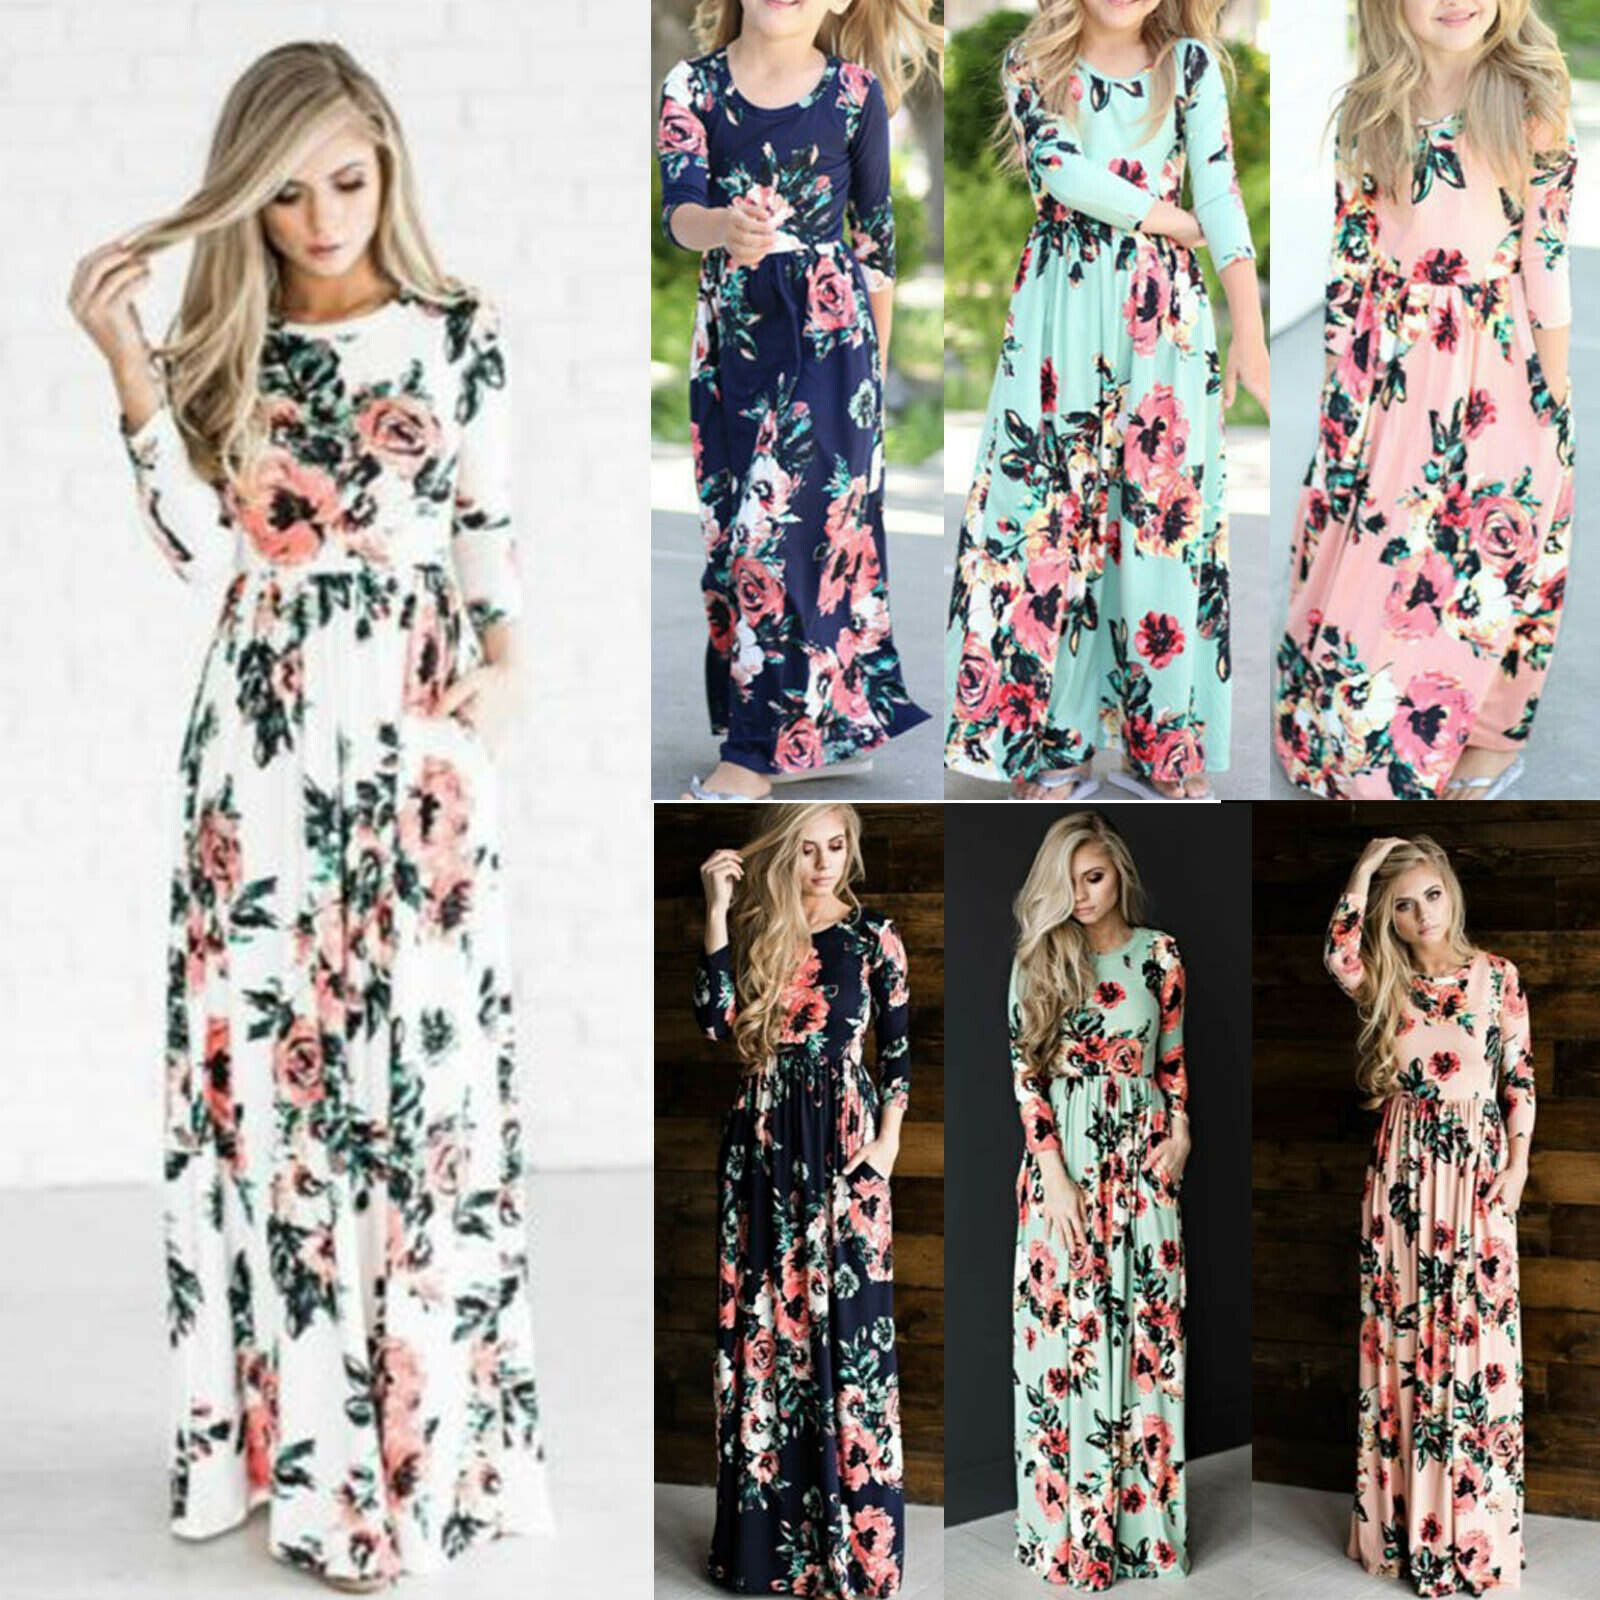 69b9cd61fc US Mommy and Me Family Matching Dress Mother Daughter Floral Holiday Maxi  Dress - Mother Daughter